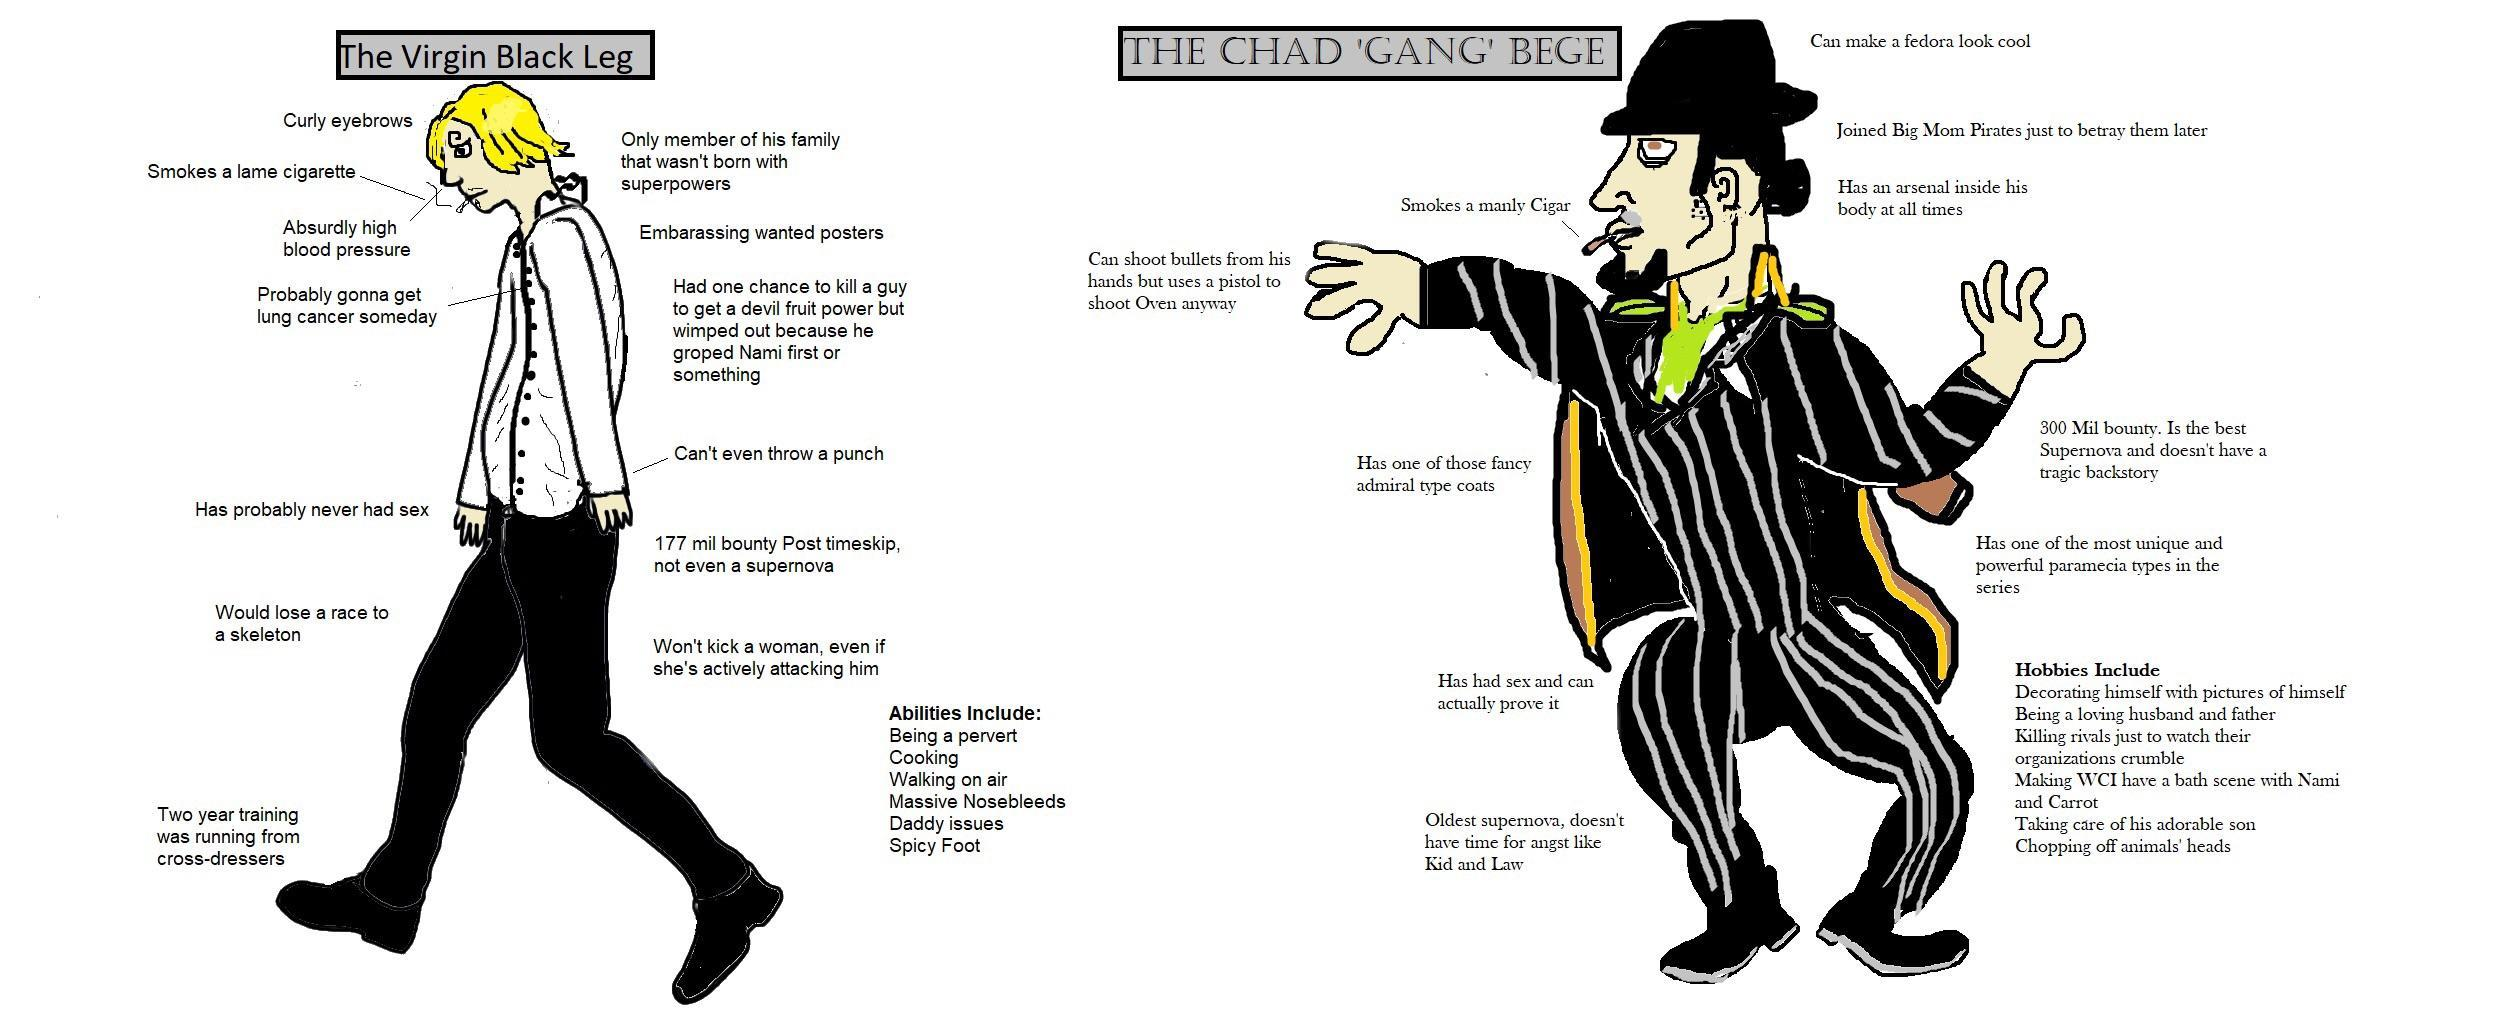 The Chad Bege